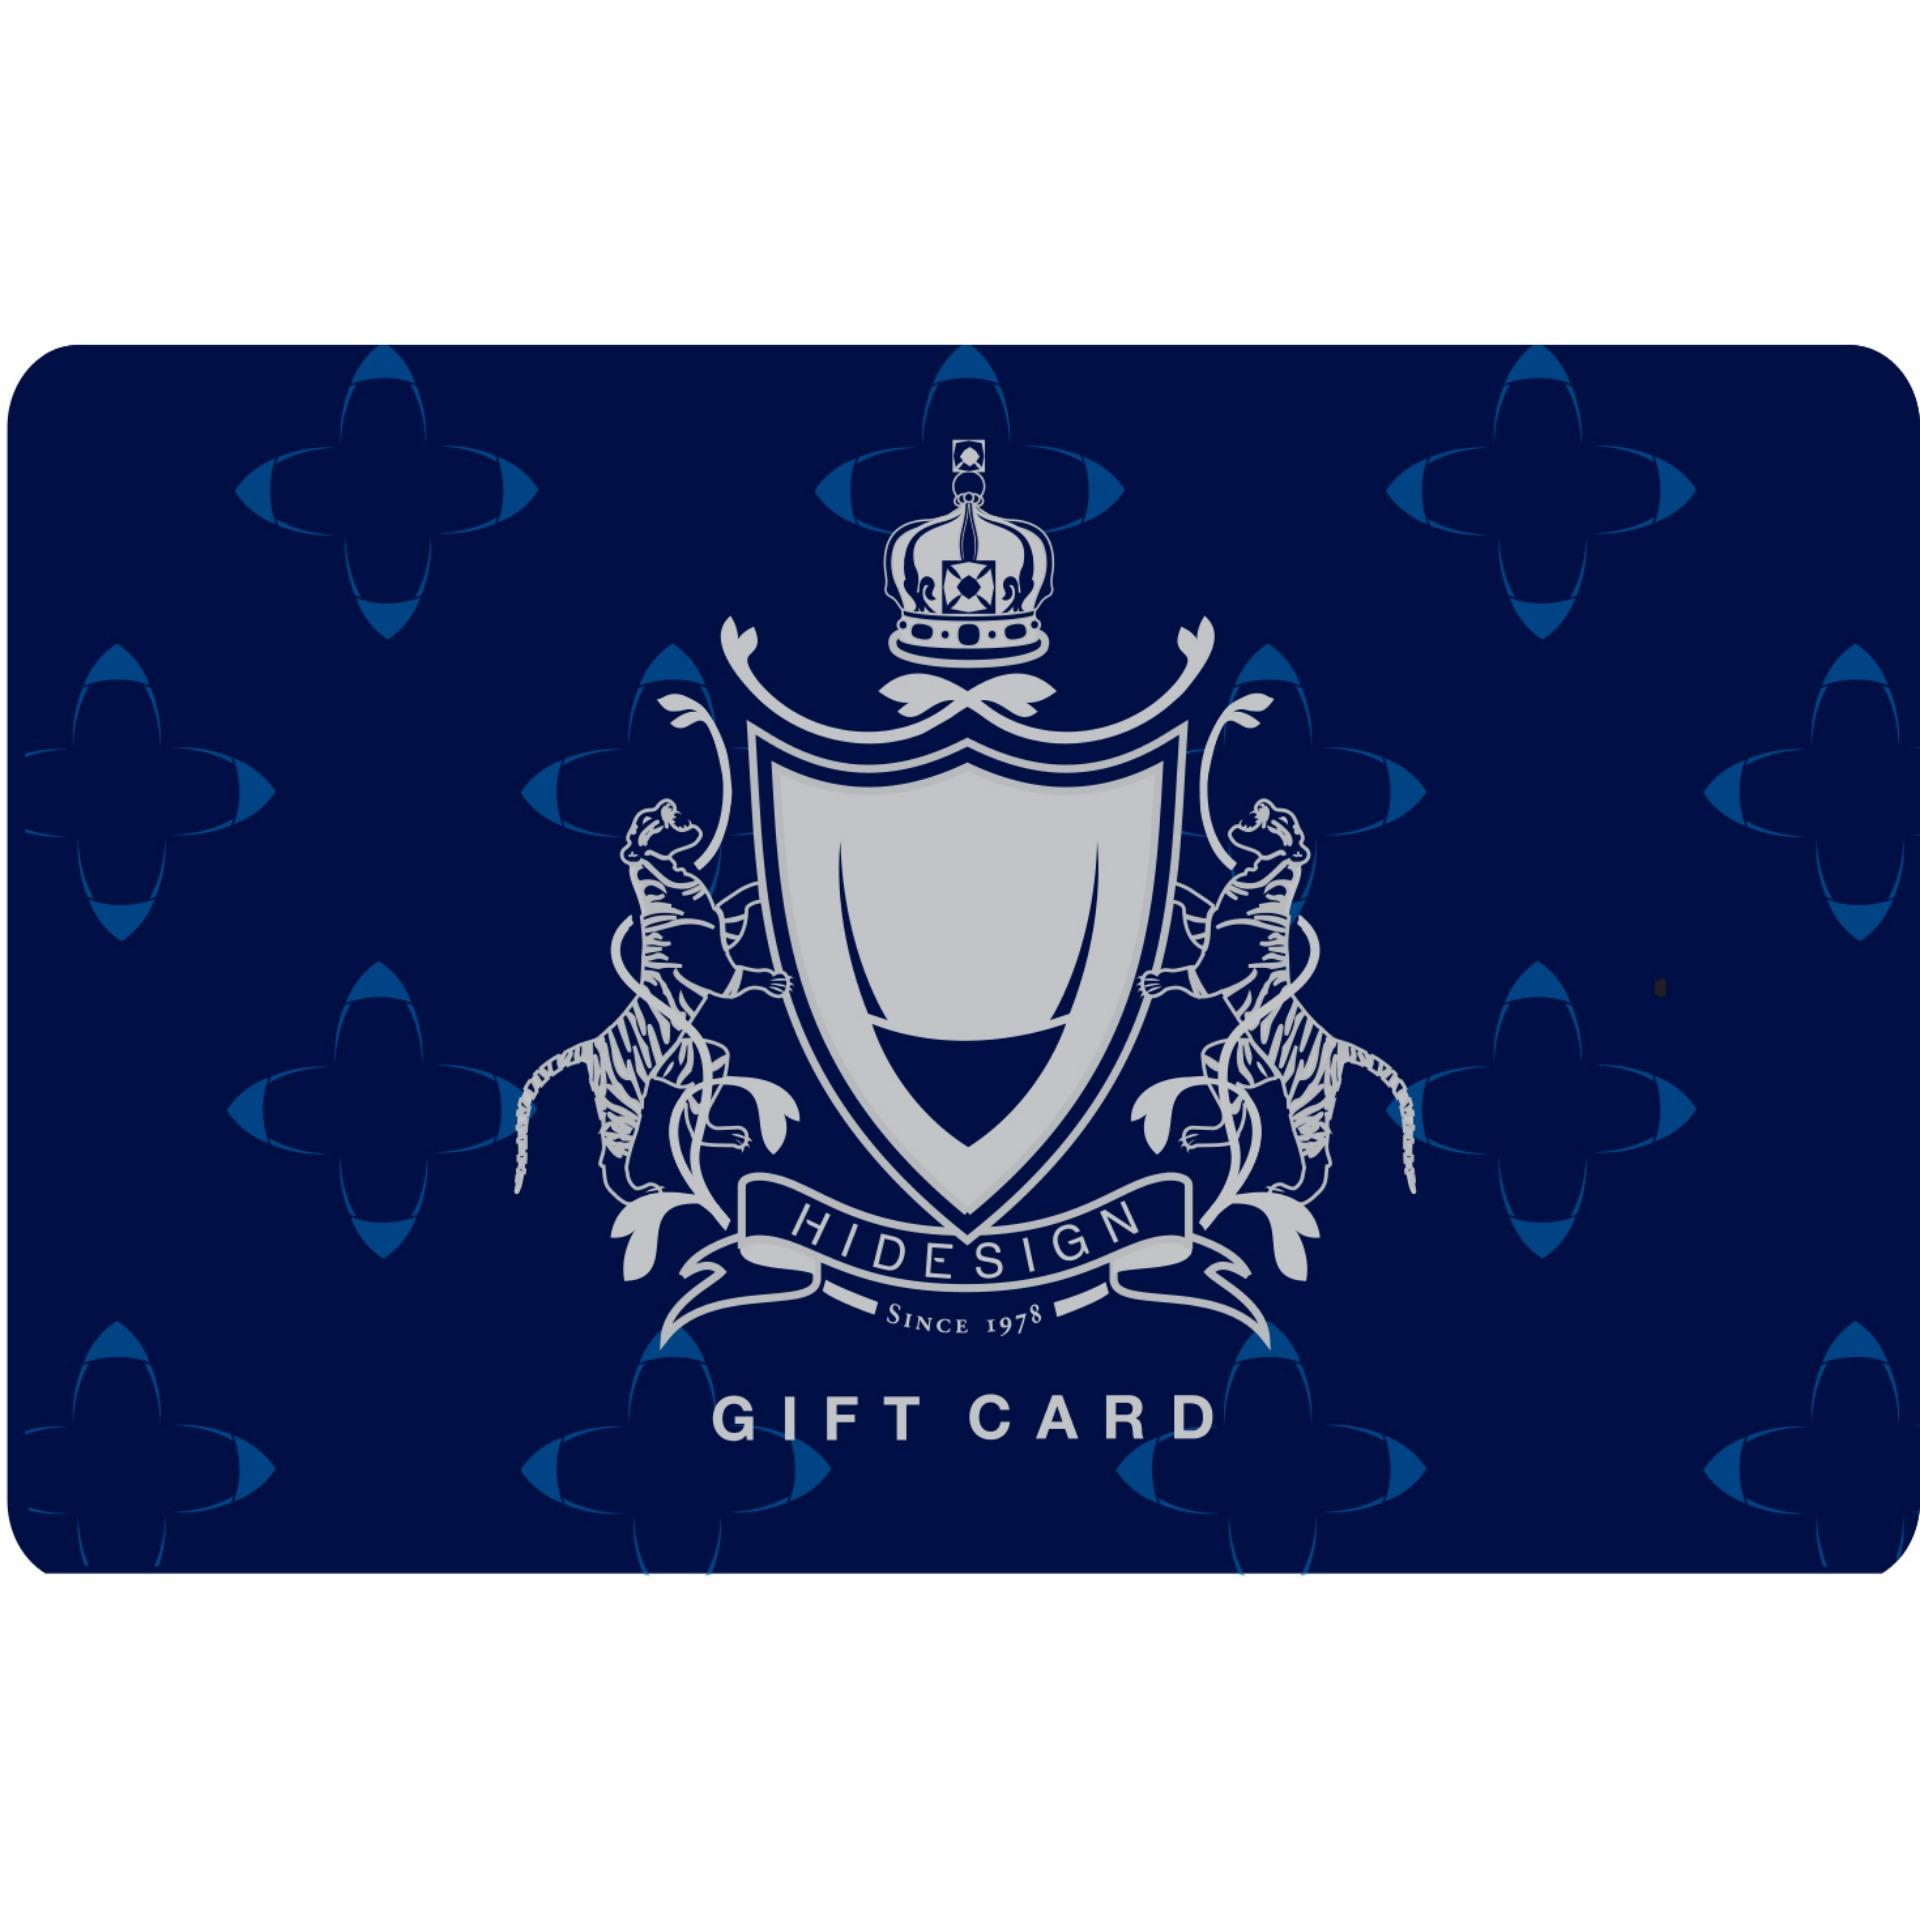 Hidesign Digital Gift Cards: Rs. 4005 By Qwikcilver Store.